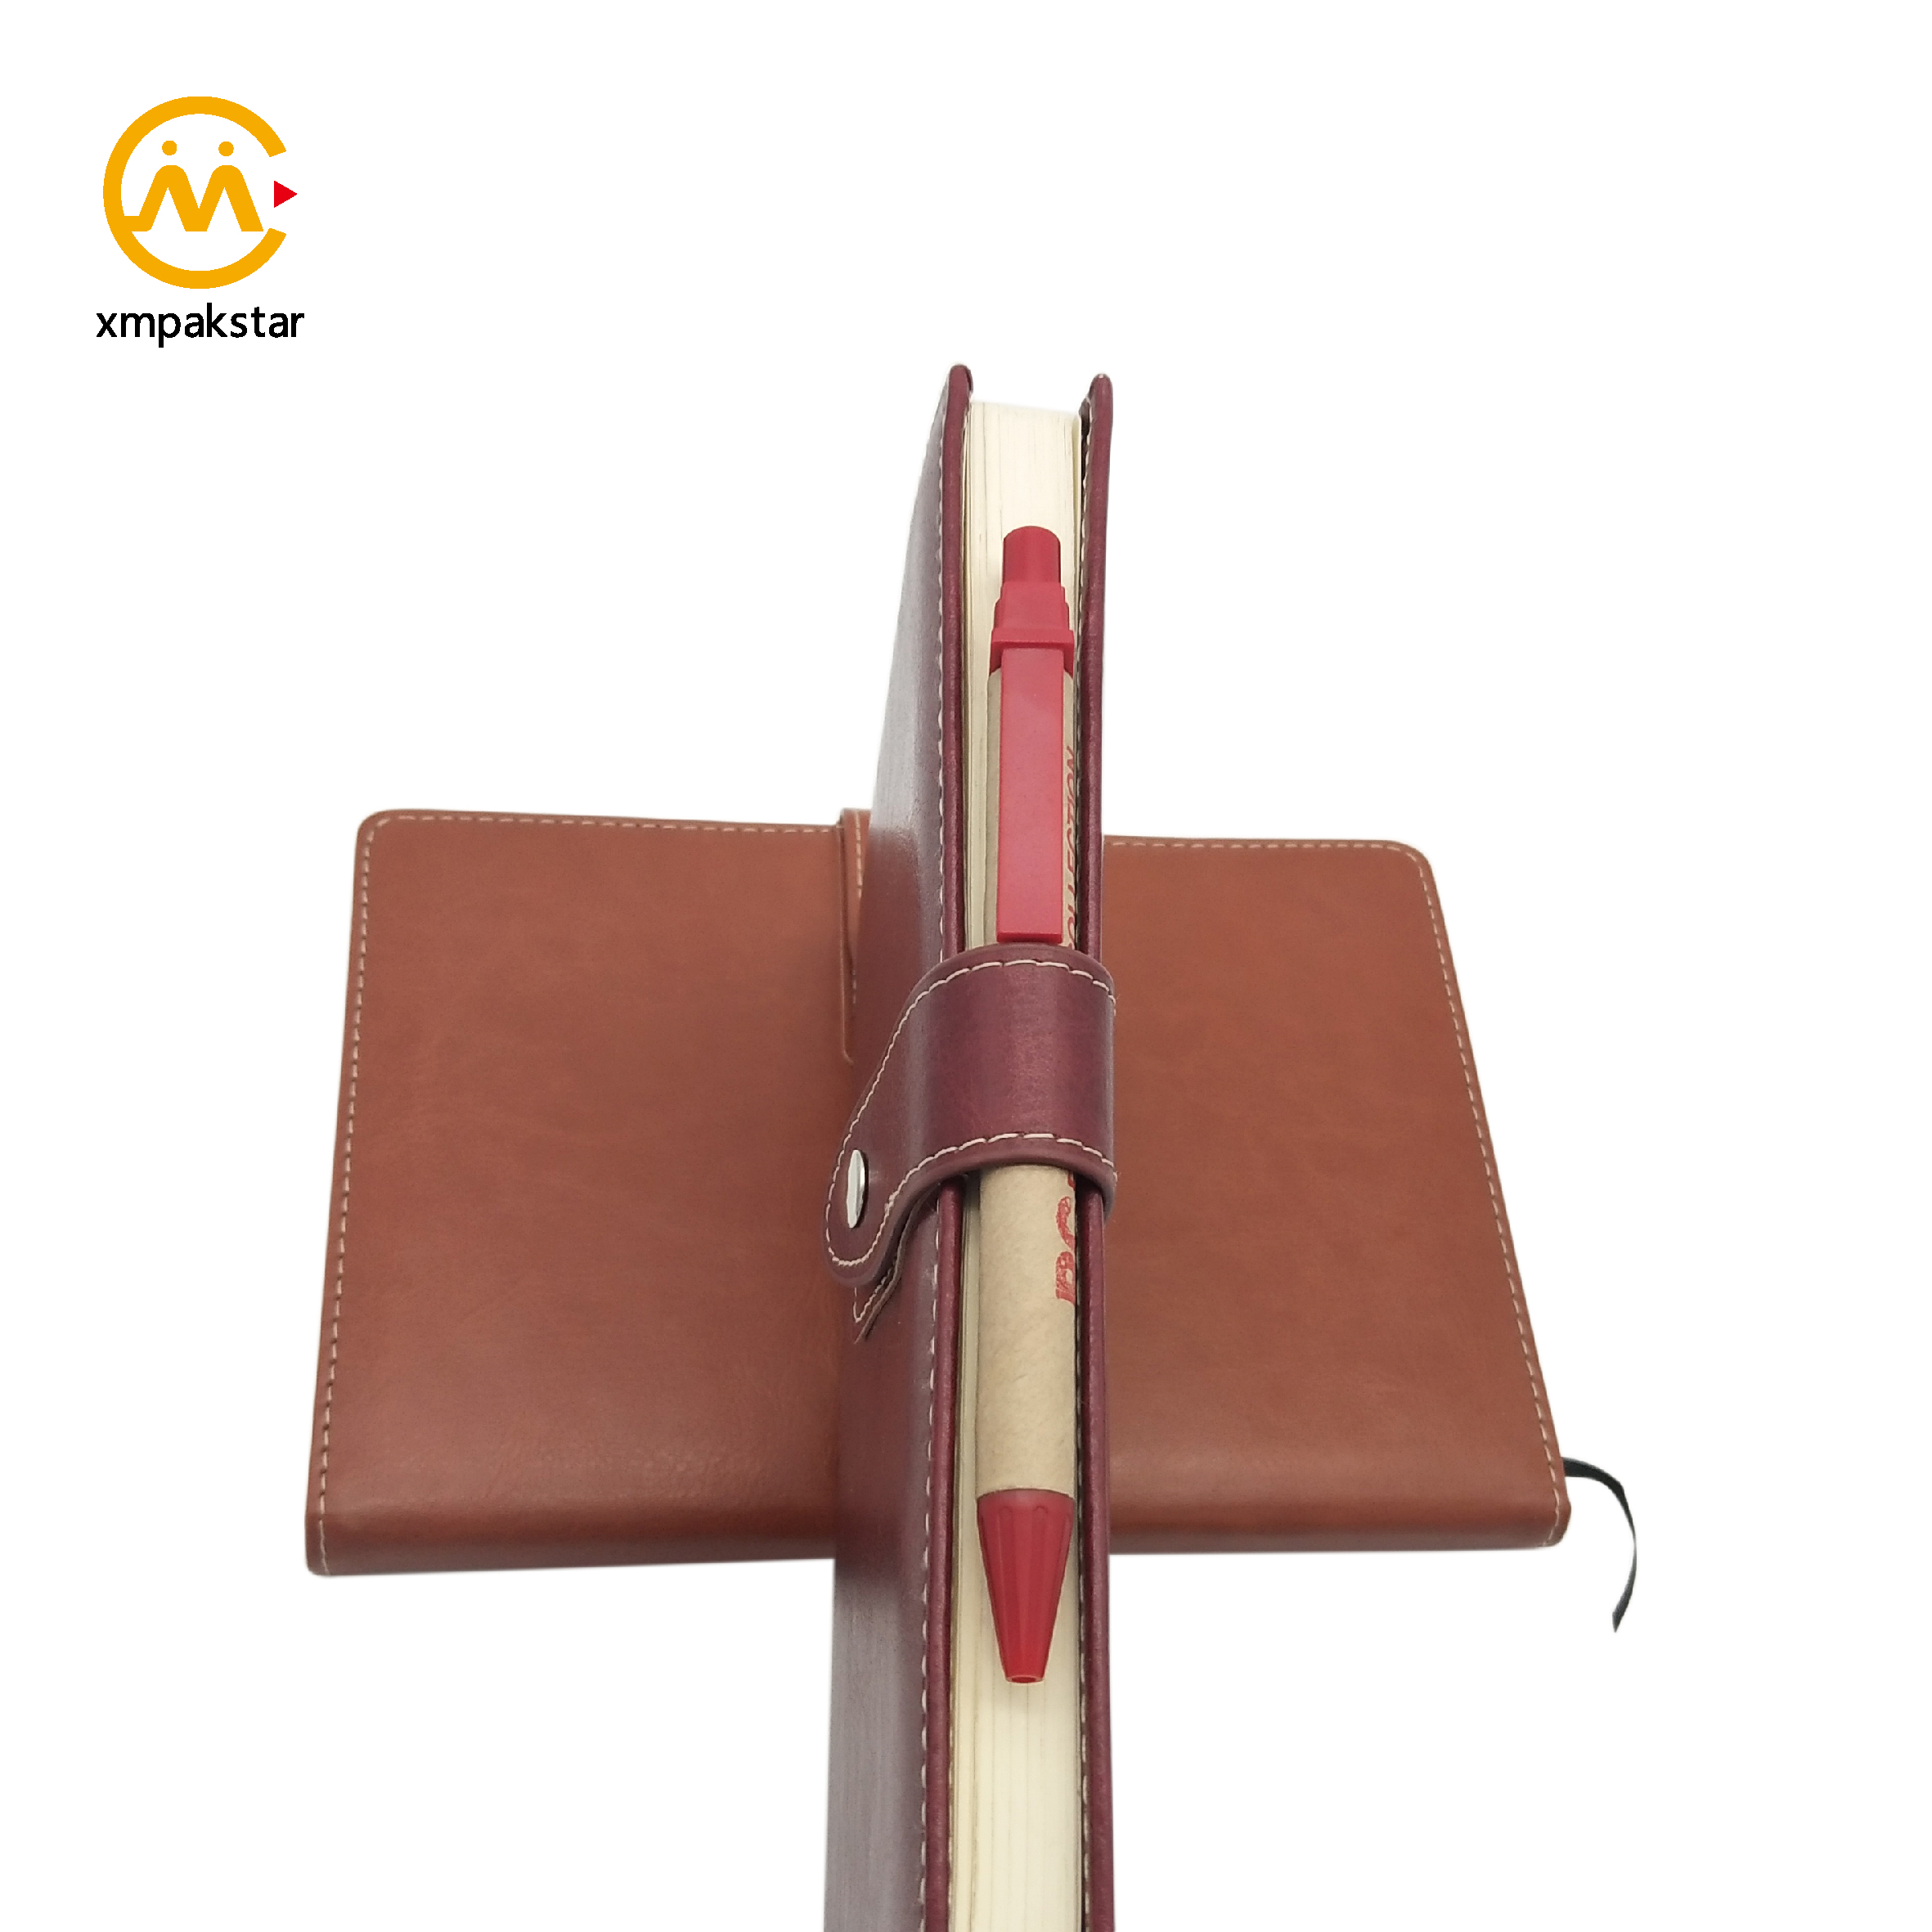 Manufacture A5 custom pu leather business planner notebook with button closure